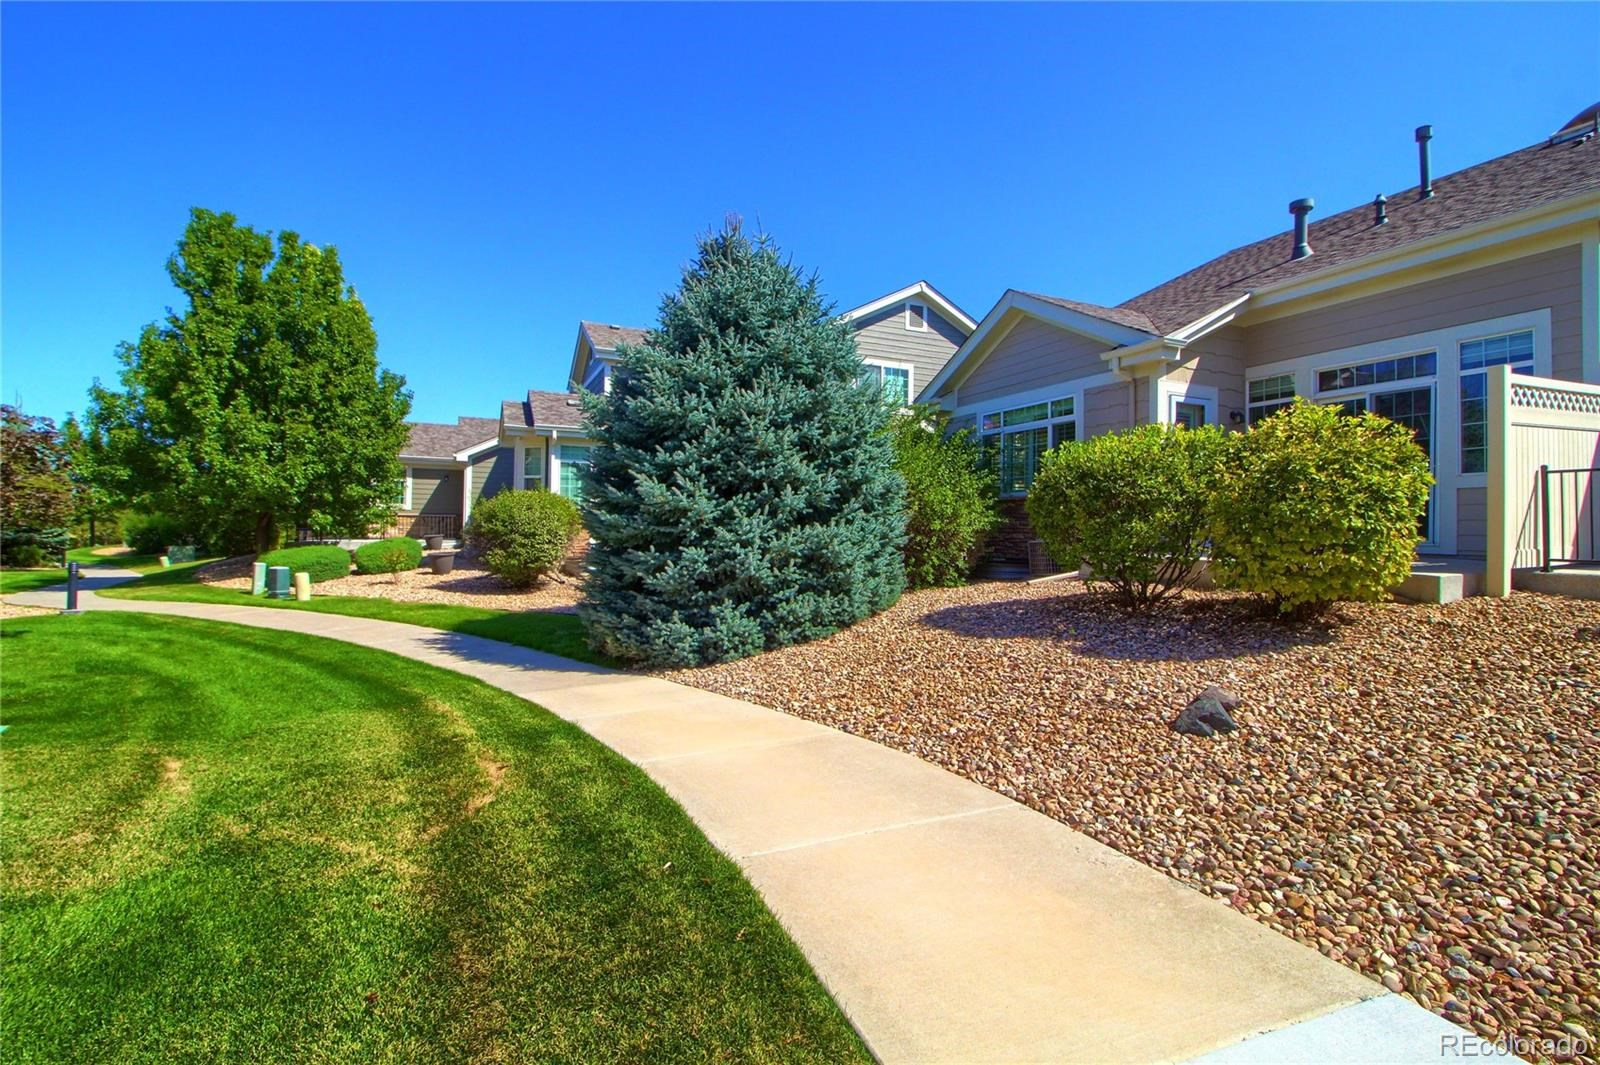 MLS# 8597792 - 39 - 13787 Stone Circle #101, Broomfield, CO 80023